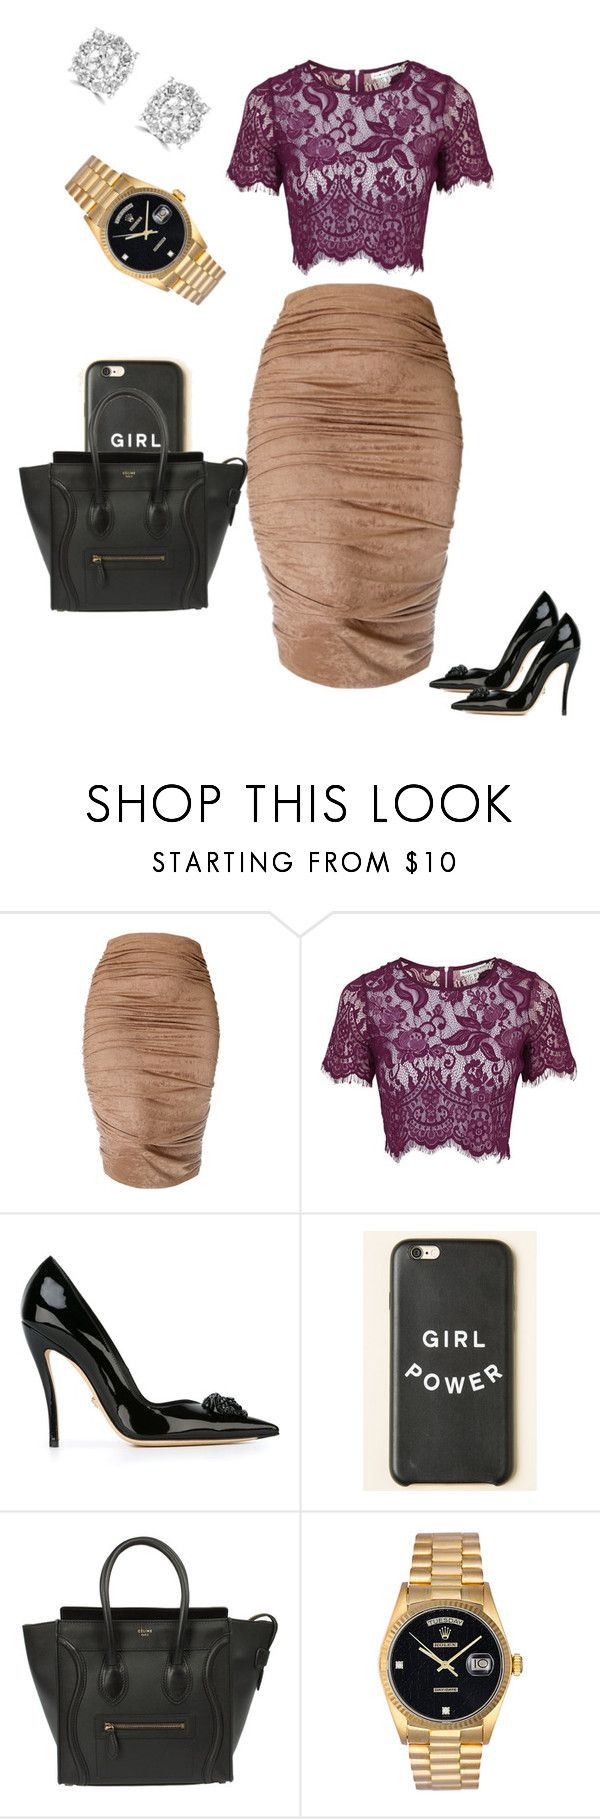 """I walk on bishes with my Versace shoes 💋"" by trendyhoee ❤ liked on Polyvore featuring Topshop, Versace, Rolex and Effy Jewelry"